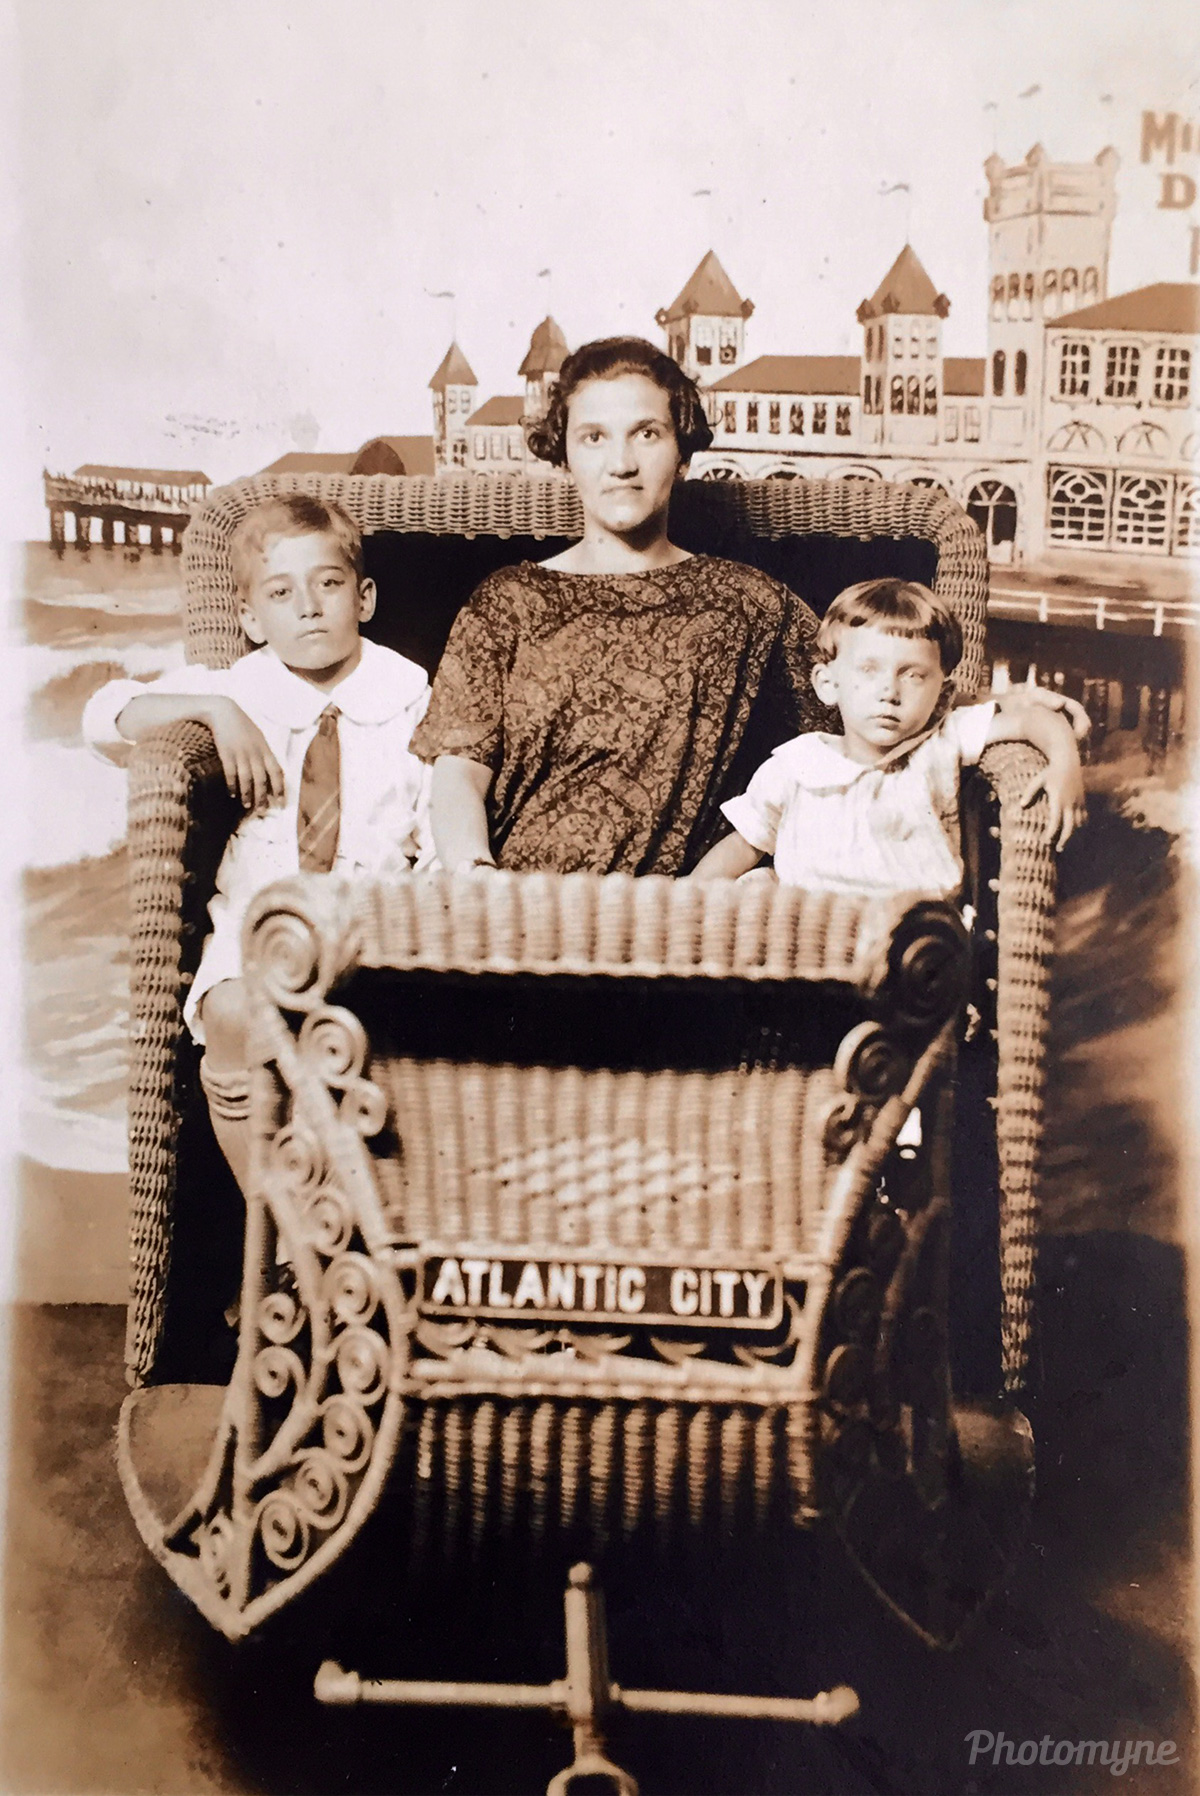 My great grandmother with my grandmother and great uncle, Atlantic City, New Jersey, United States, 1925